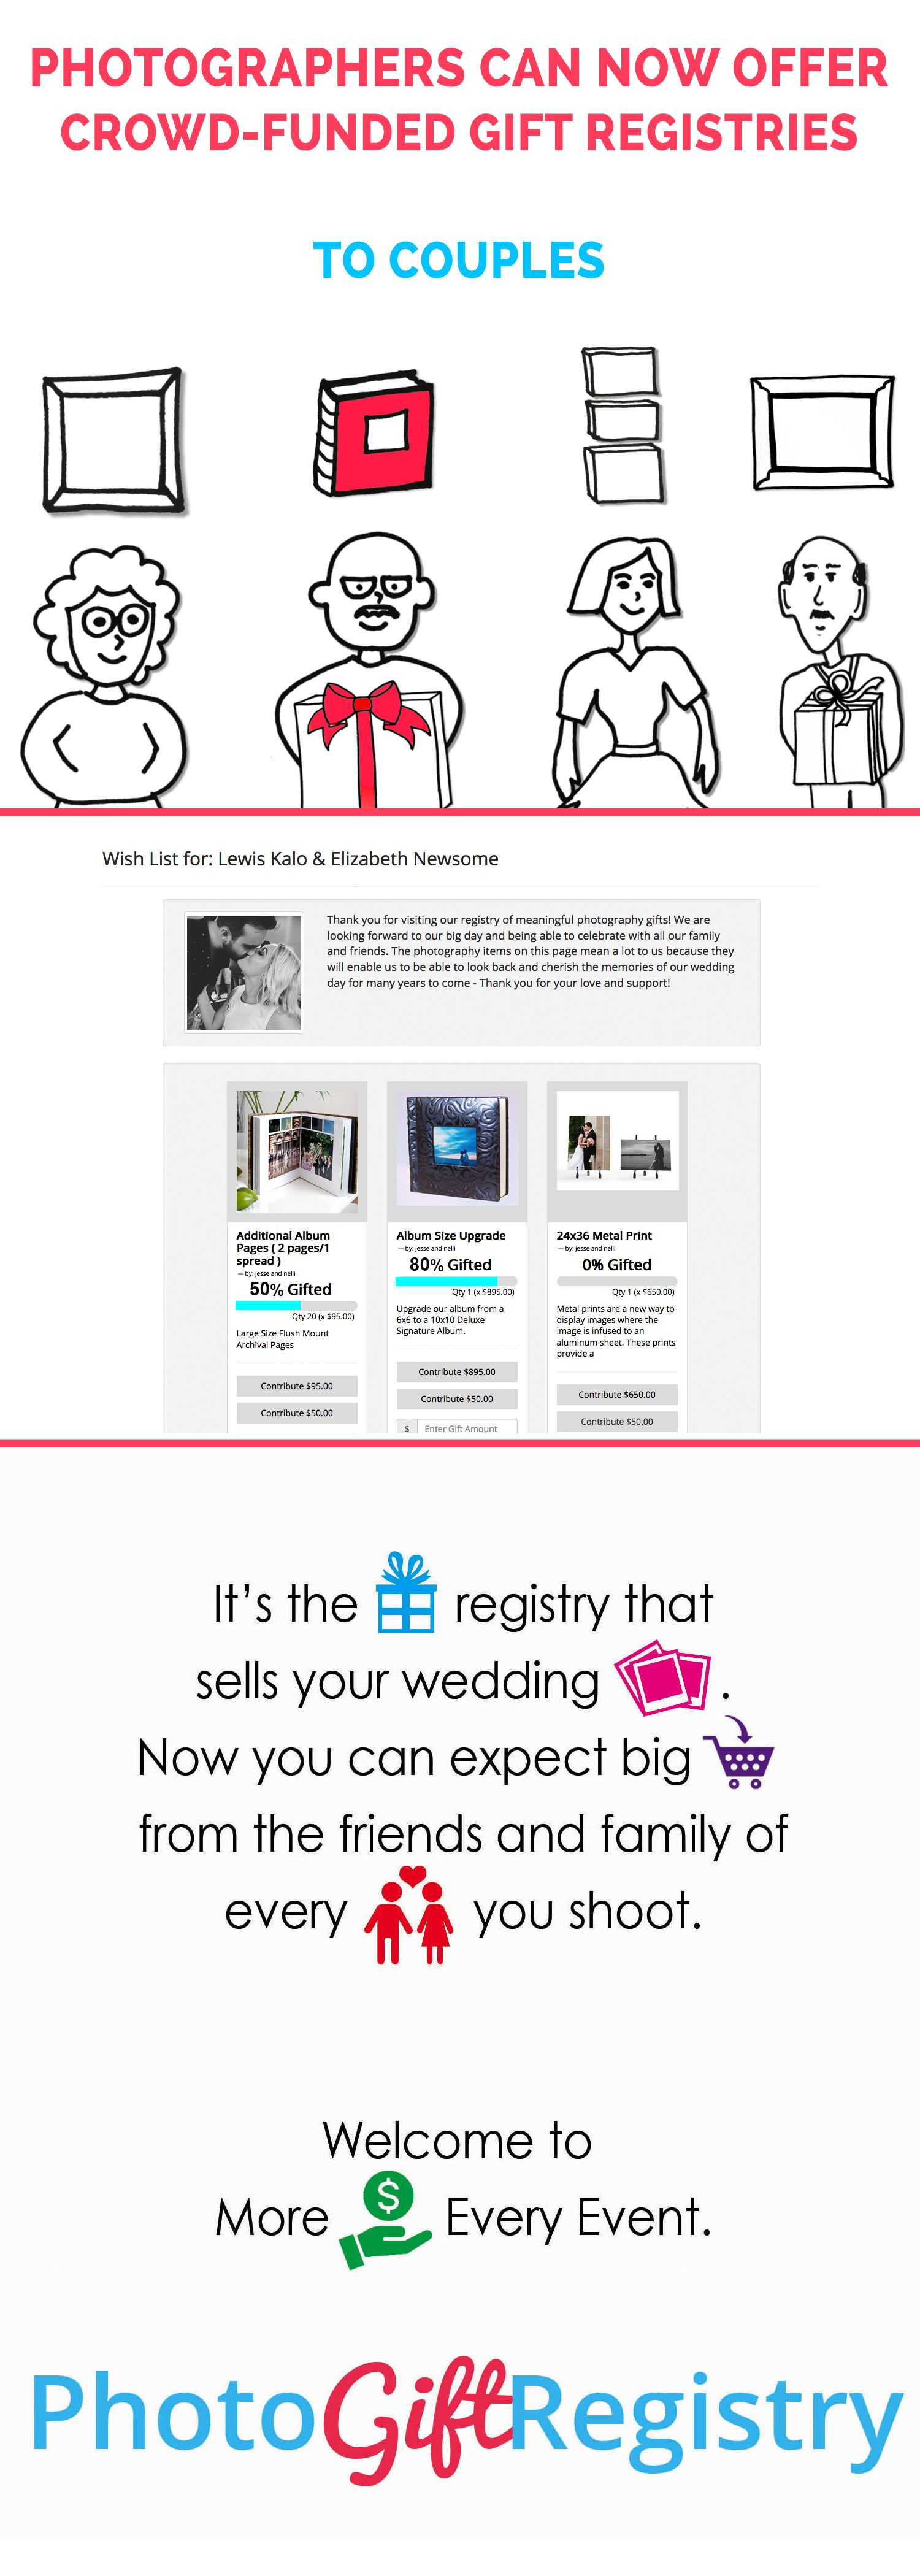 The Photo Gift Registry platform allows photographers to